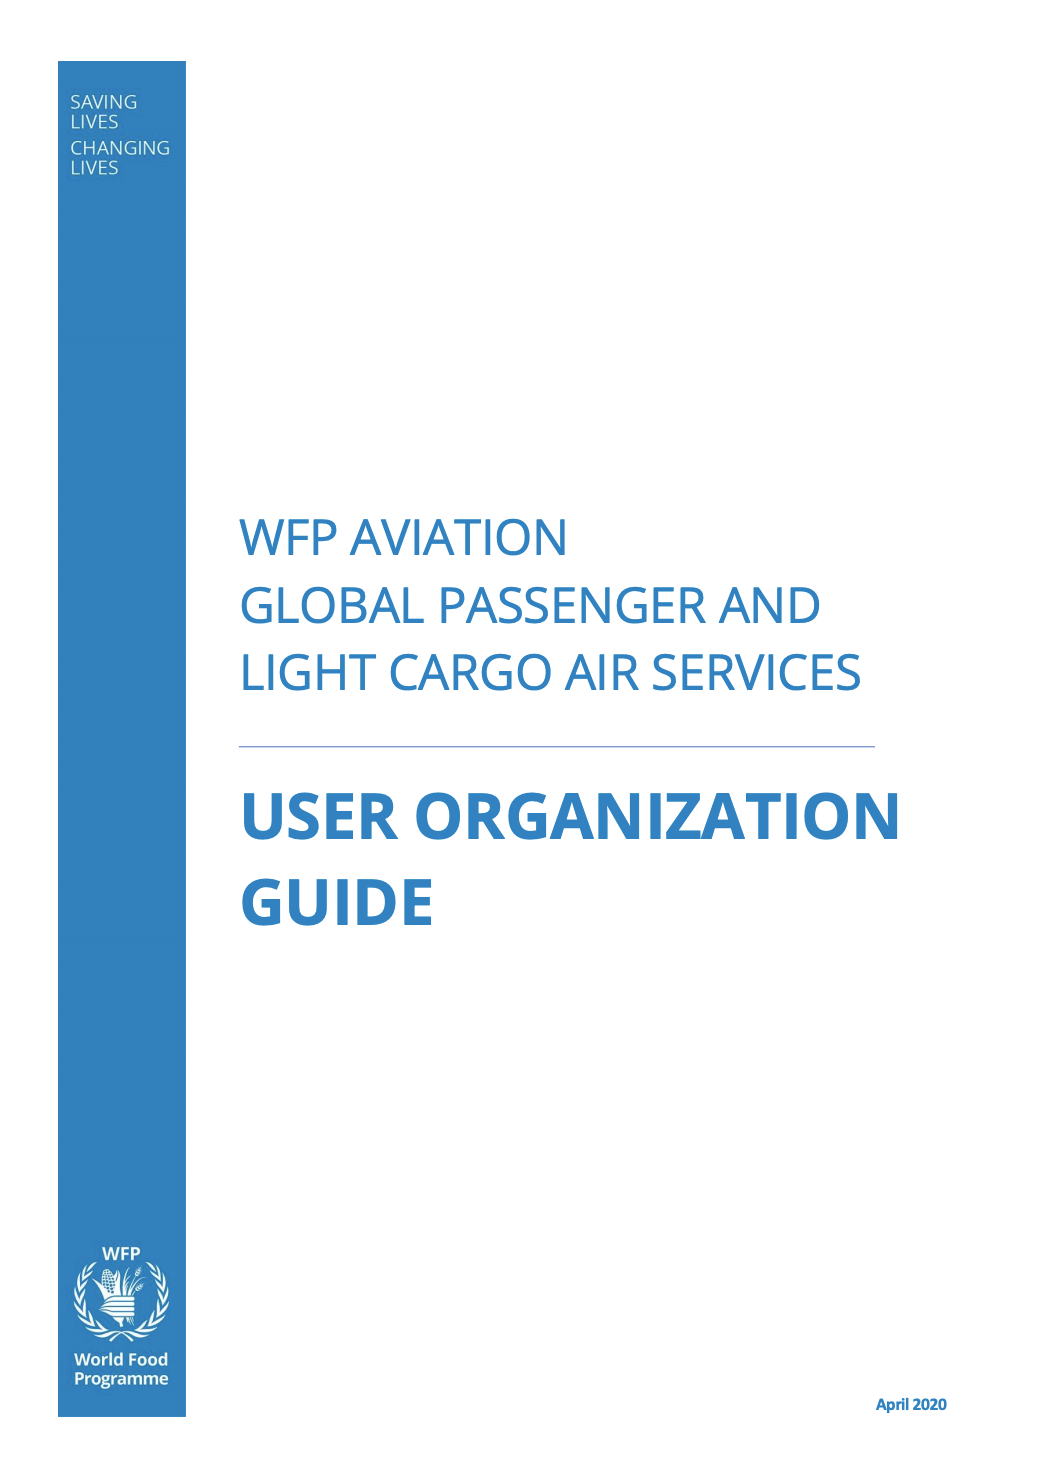 WFP Common Services Plan: Passenger and light cargo air services